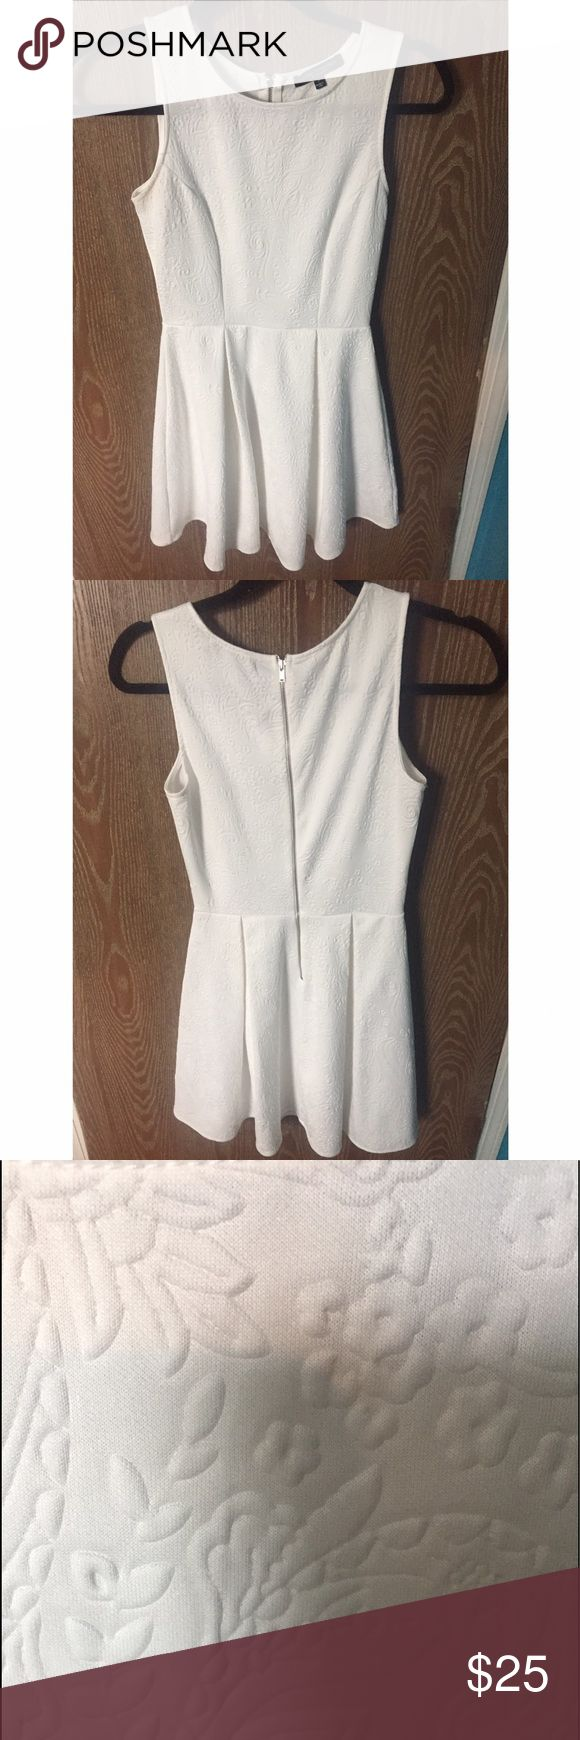 White dress Size small from Nordstrom worn twice let me know if you have any questions! Look in last pic to see the detail of the dress the brand is green envelope Nordstrom Dresses Mini